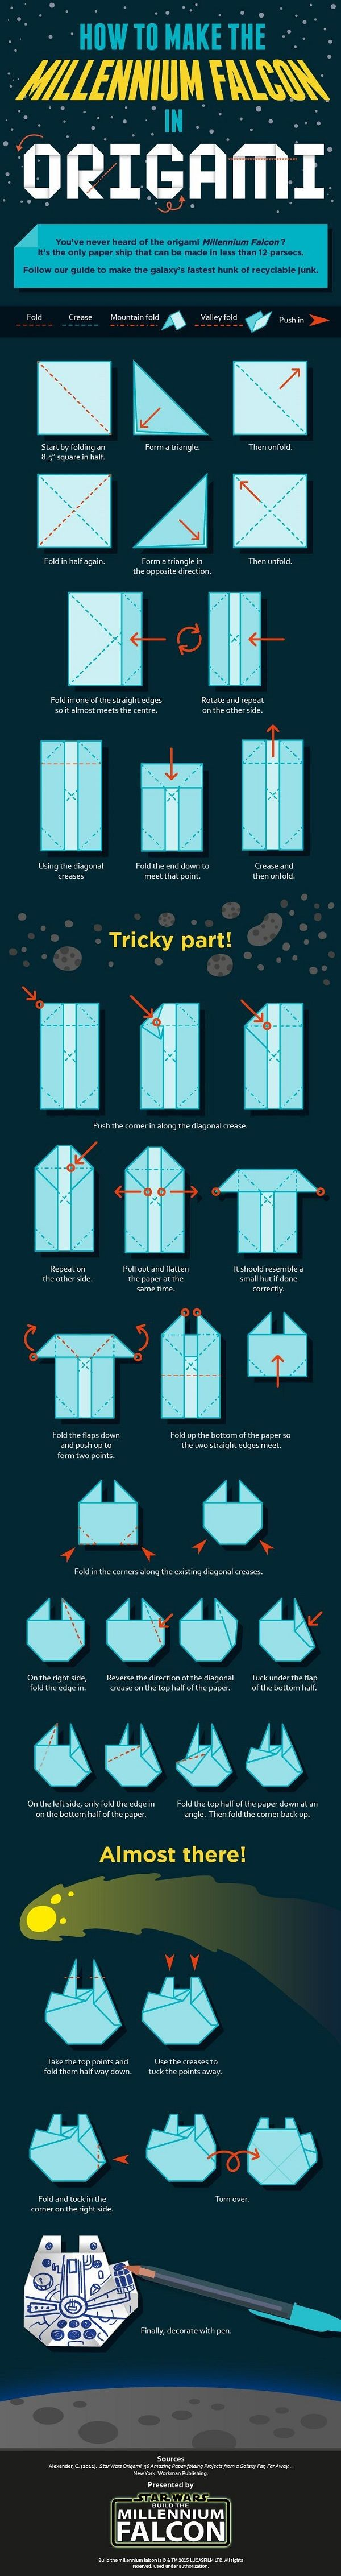 Infographic: Make Your Own Origami Millennium Falcon - DesignTAXI.com